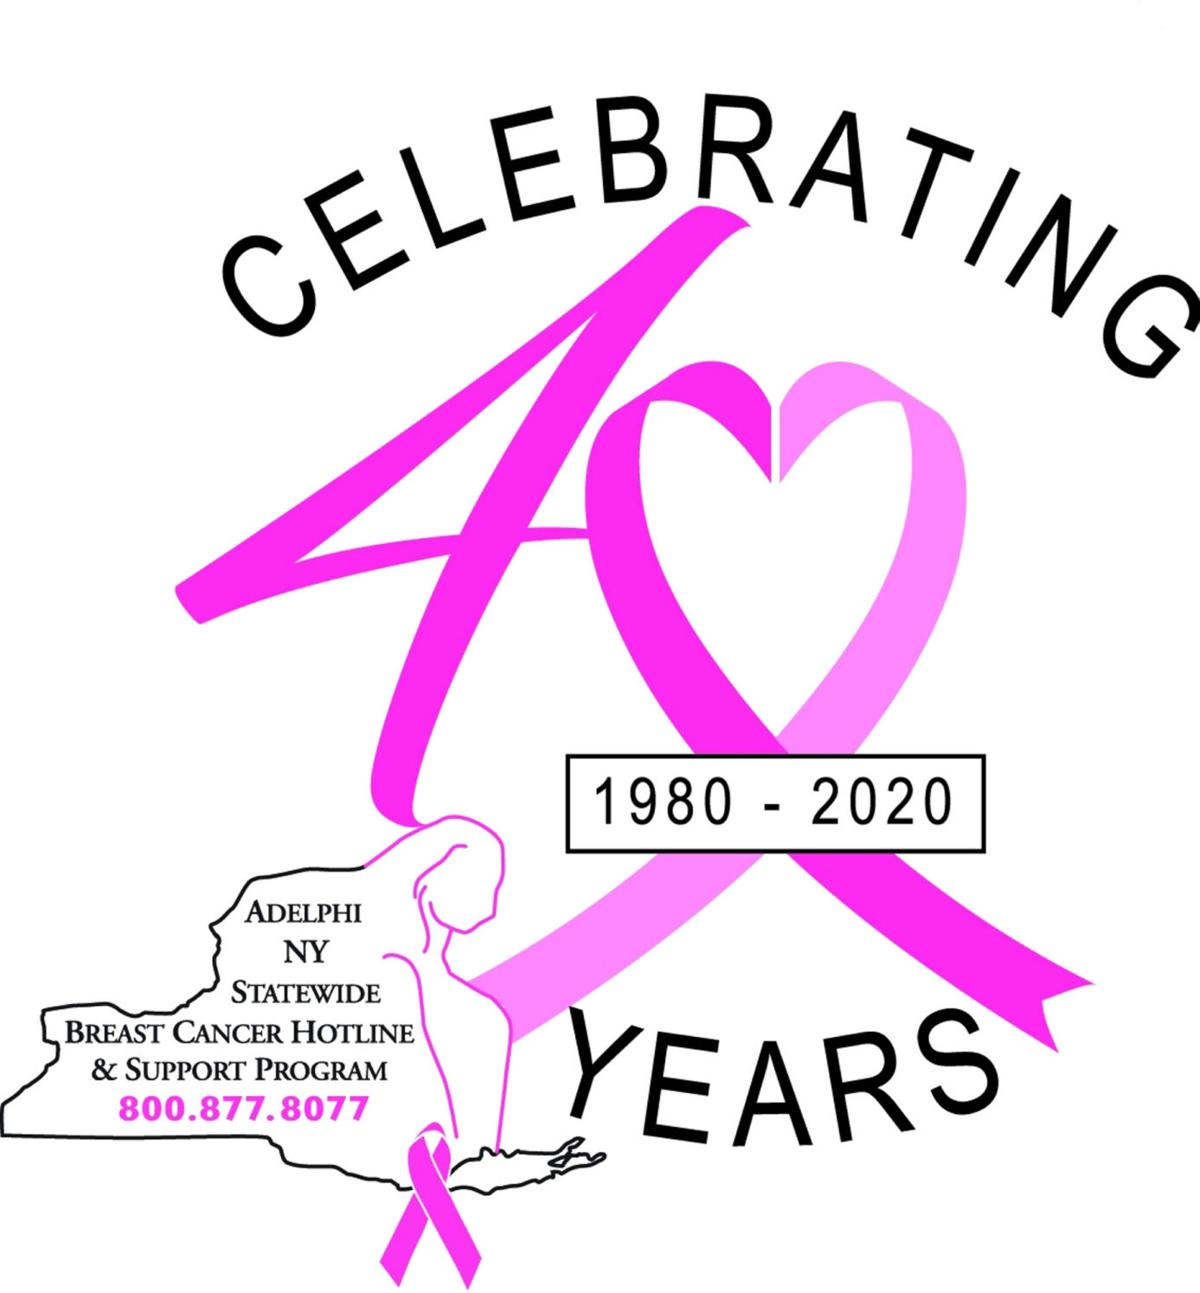 Statewide breast cancer hotline celebrating 40 years of service, education and advocacy